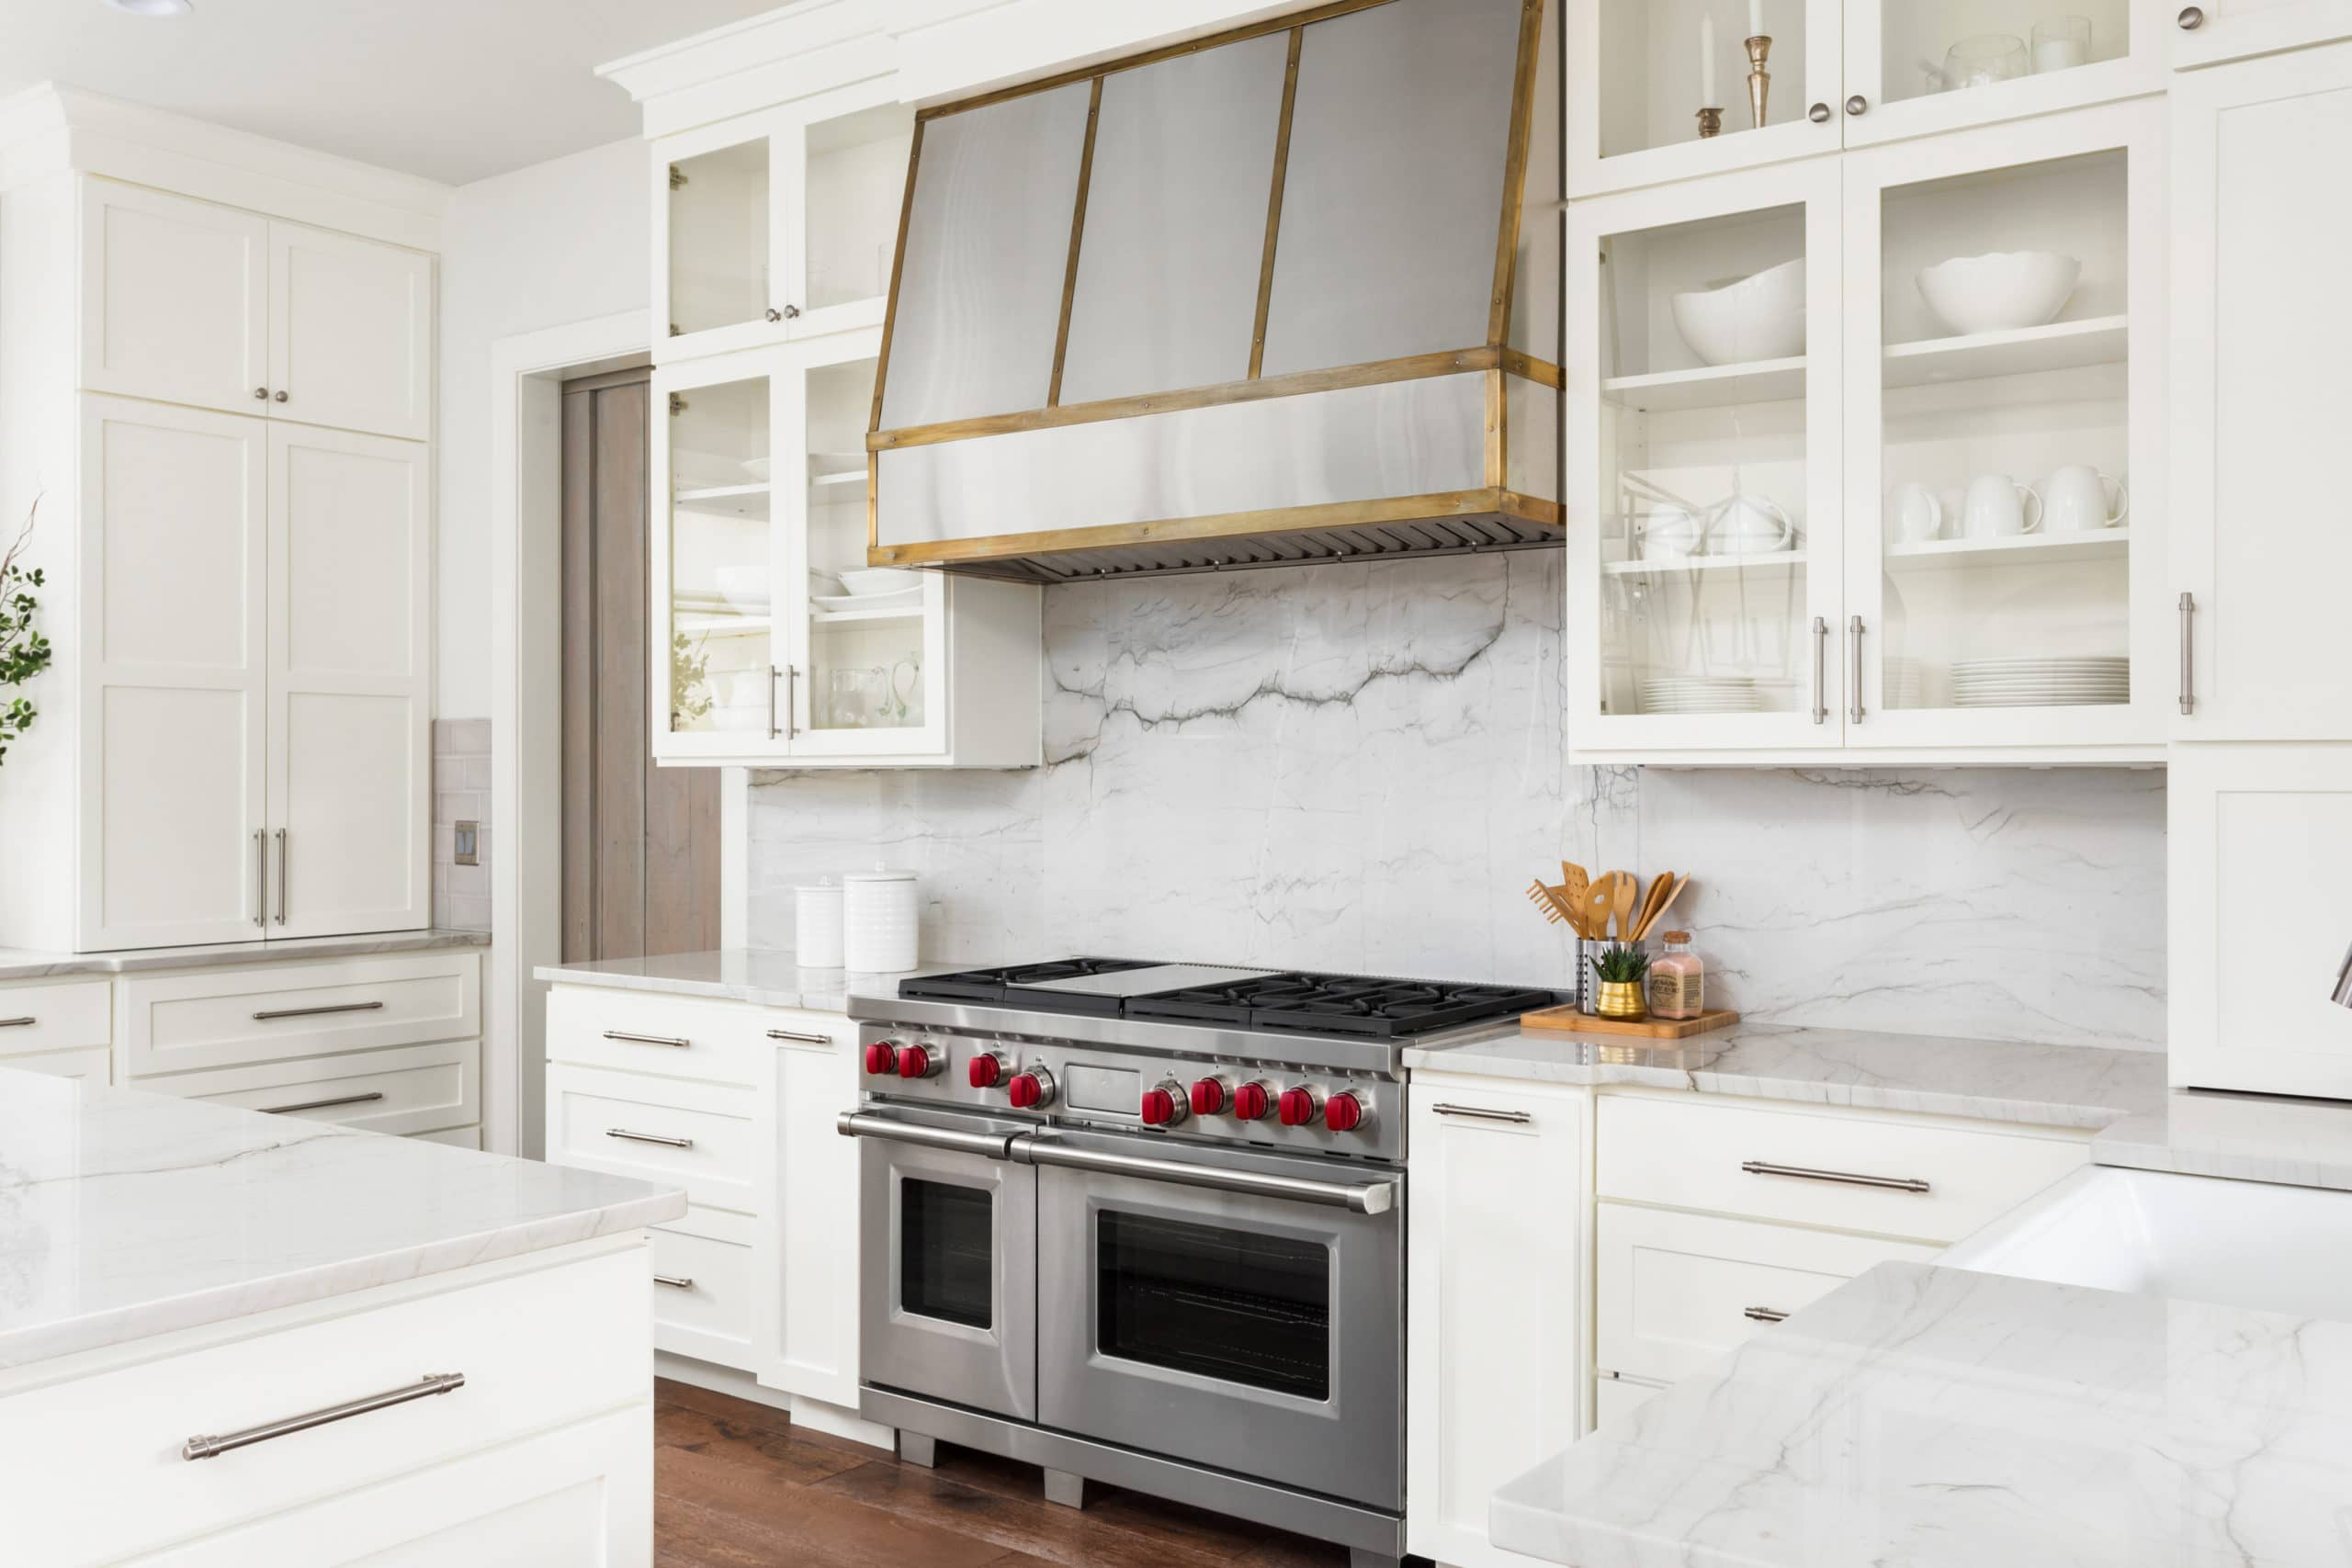 white kitchen detail in new luxury home oven range hood and countertops